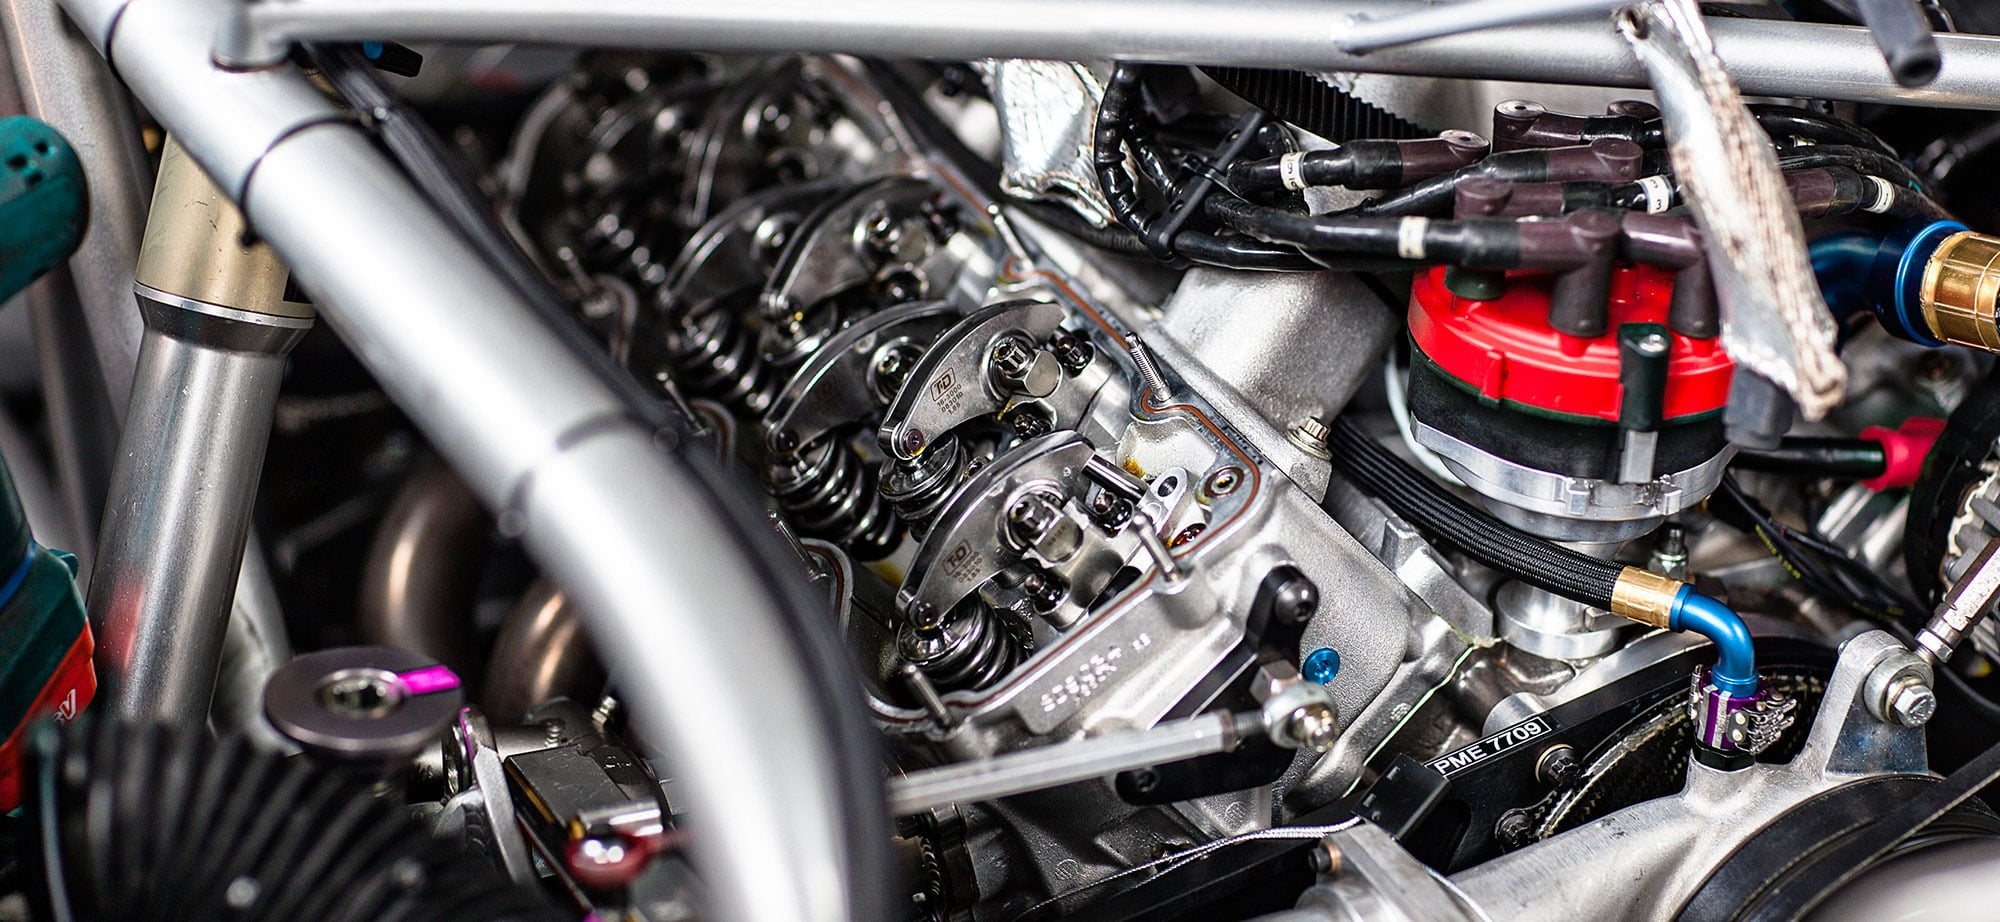 Nascar-Engine-Photo-ZRS.jpg